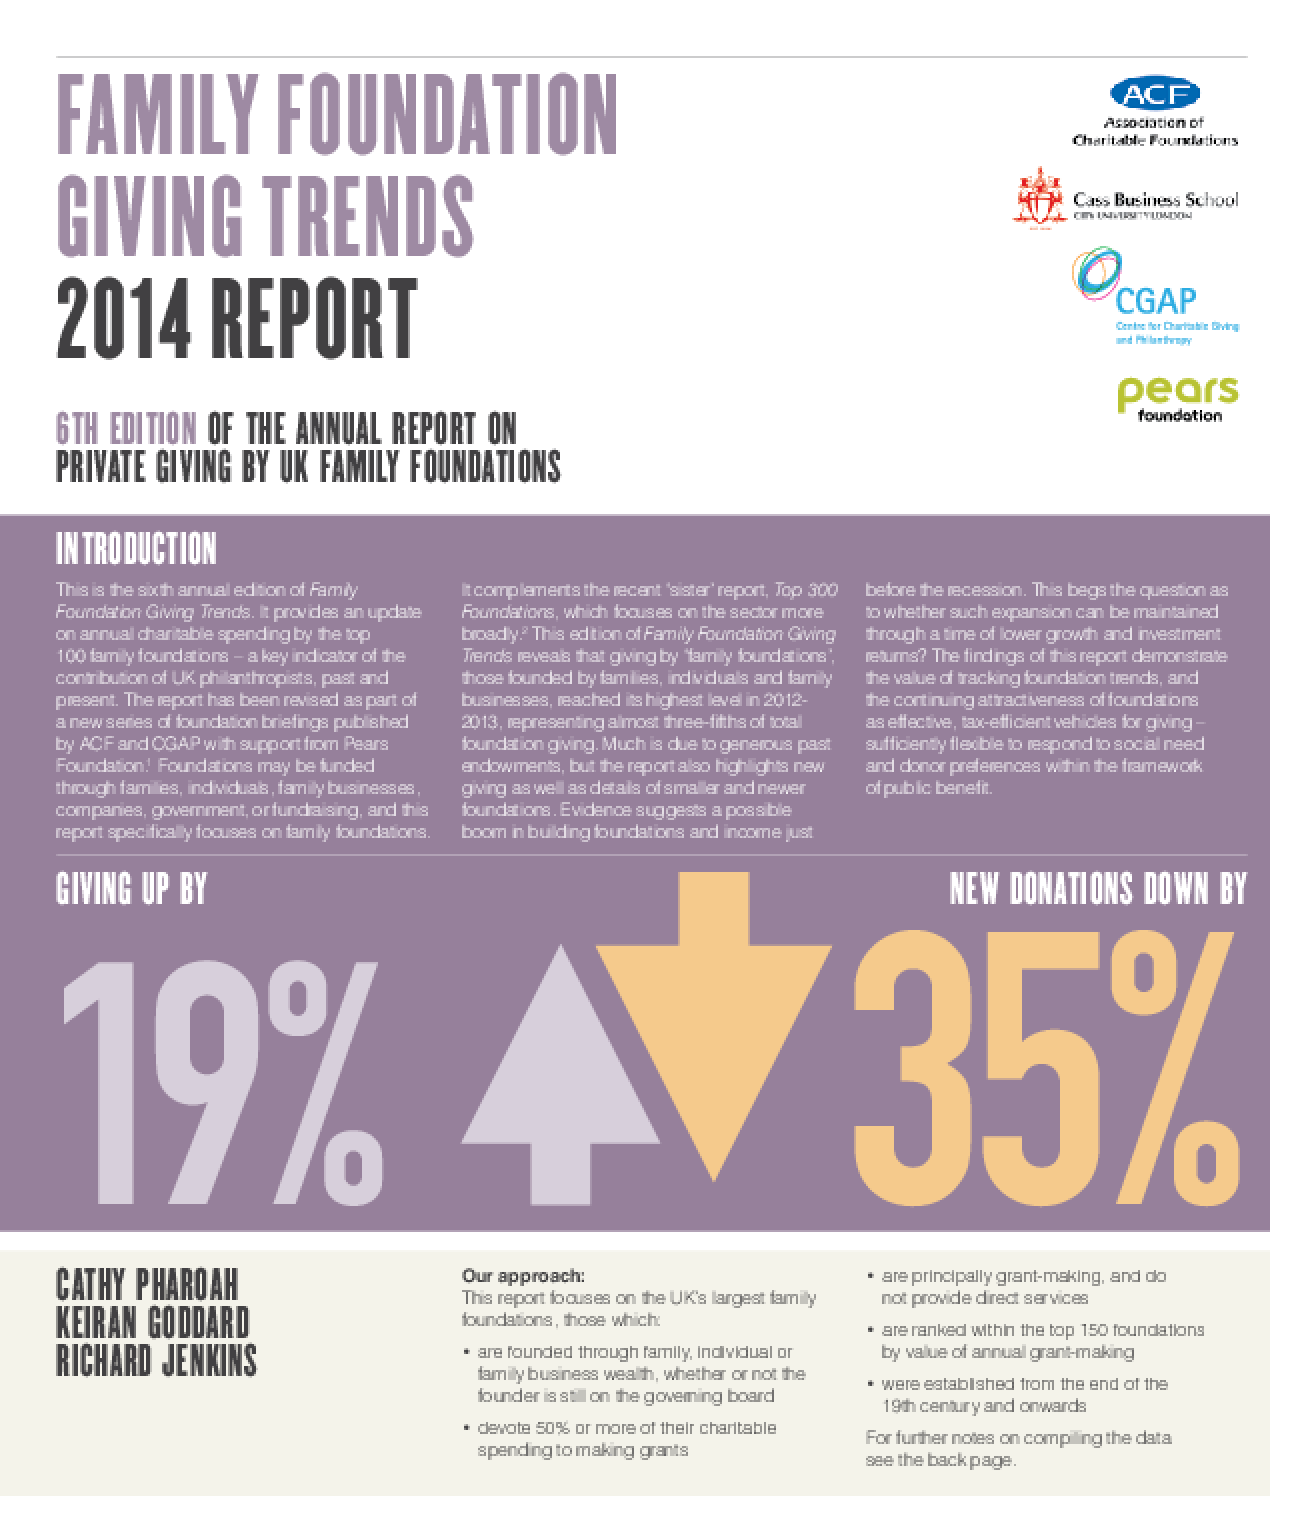 Family Foundations Giving Trends 2014 Report